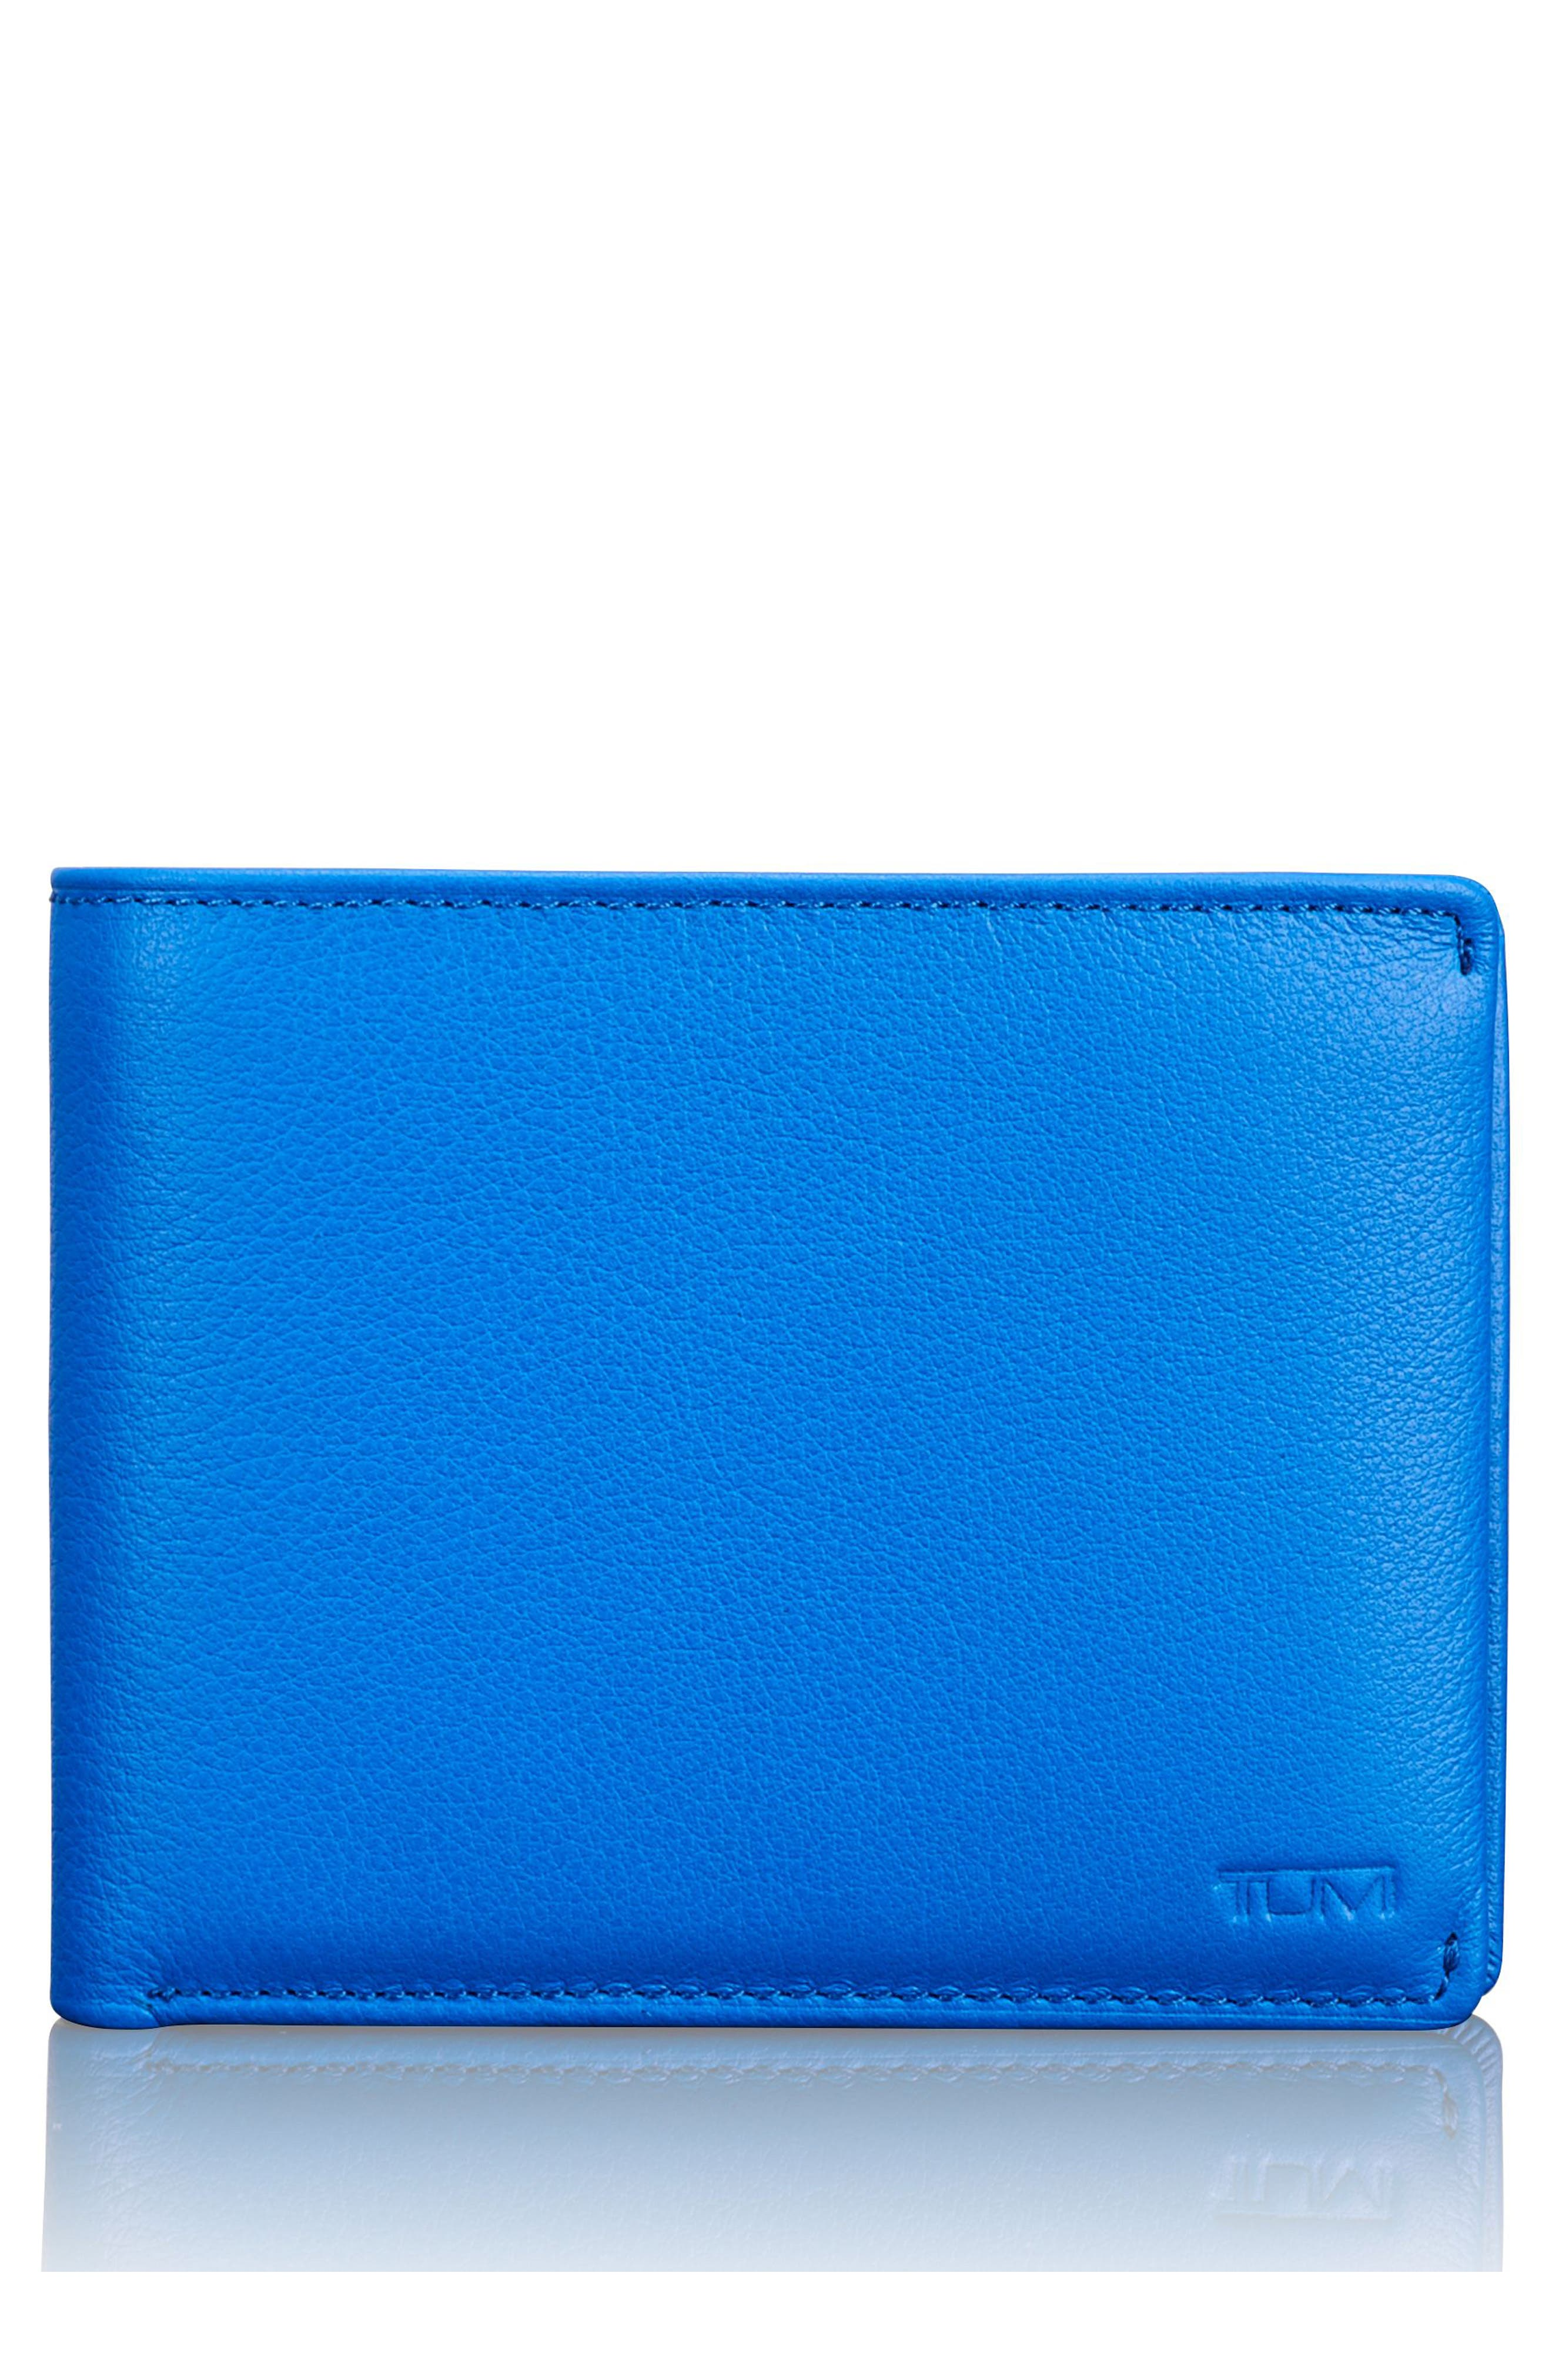 Tumi Global Passcase Wallet